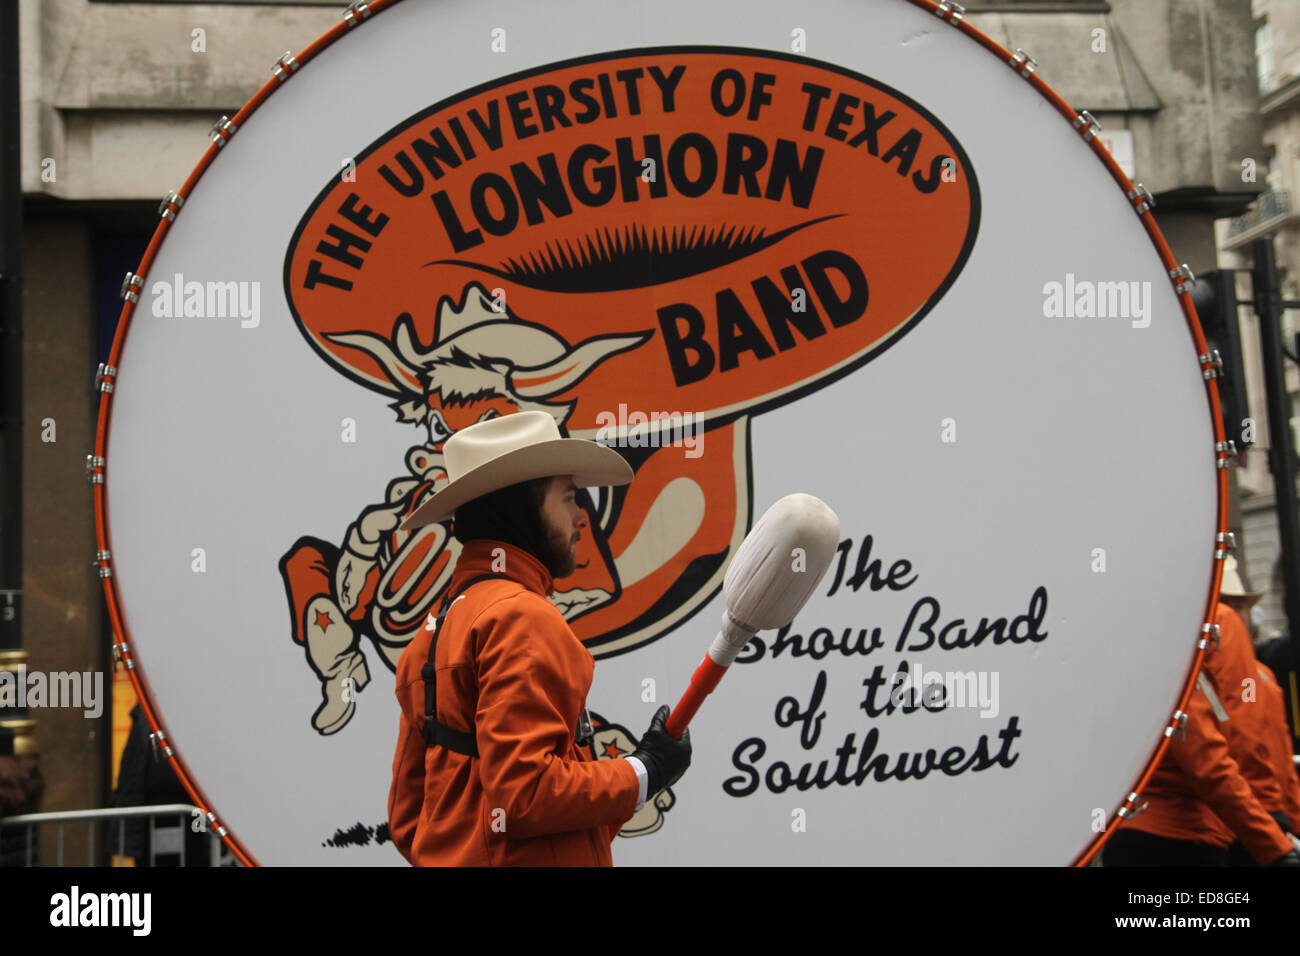 London, UK. 1 January 2015. University of Texas Longhorn band members do a final rehearsal ahead of the parade start - Stock Image